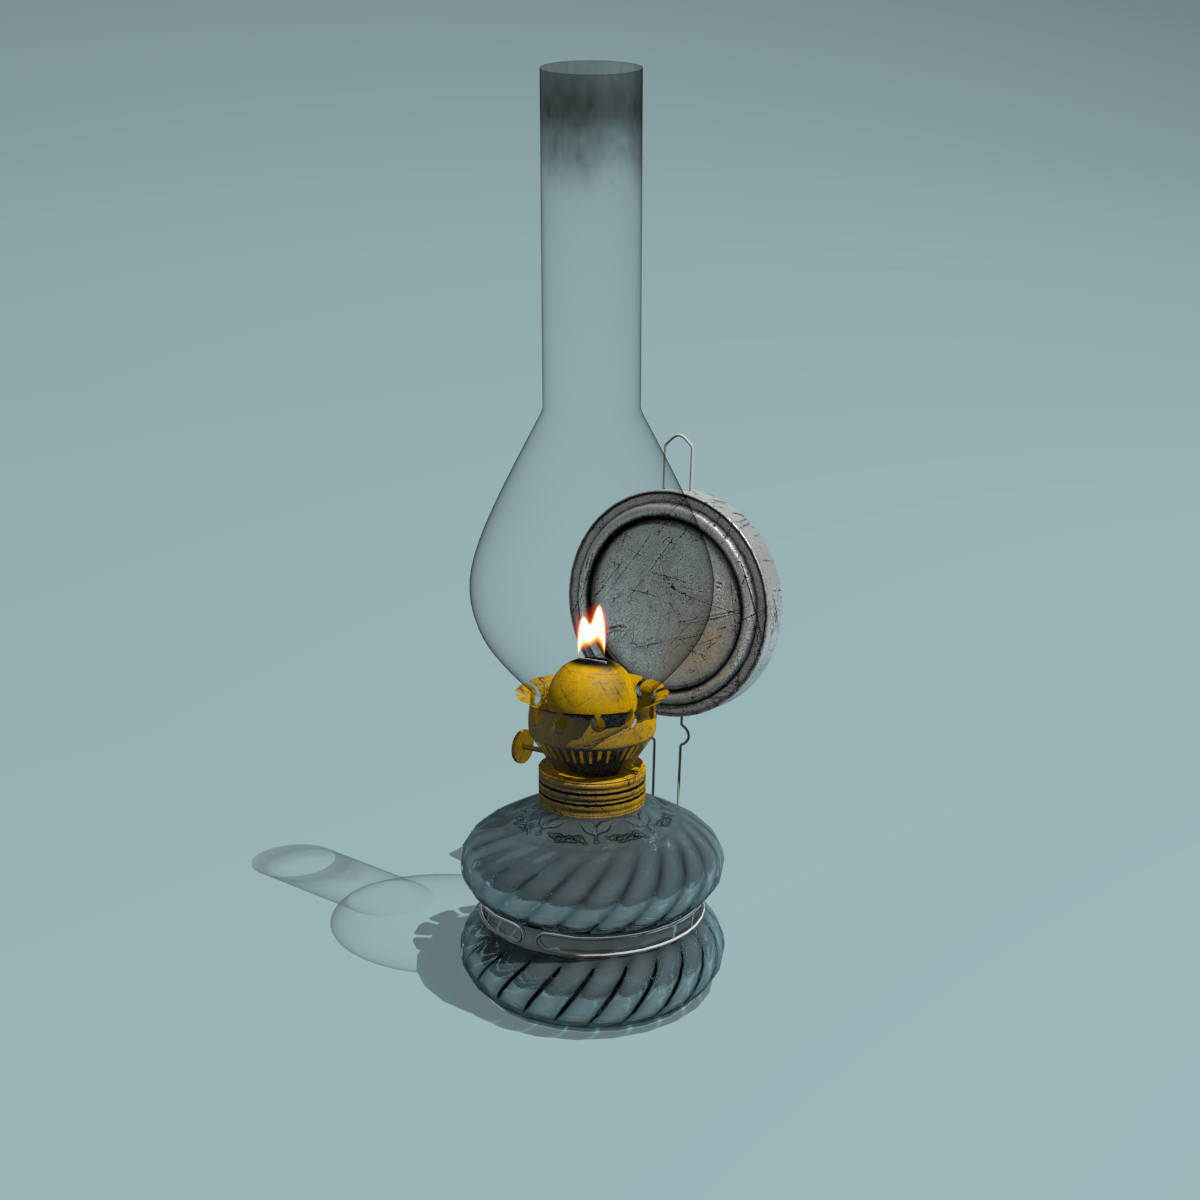 Oil Lamp 3d Model Max Obj Fbx